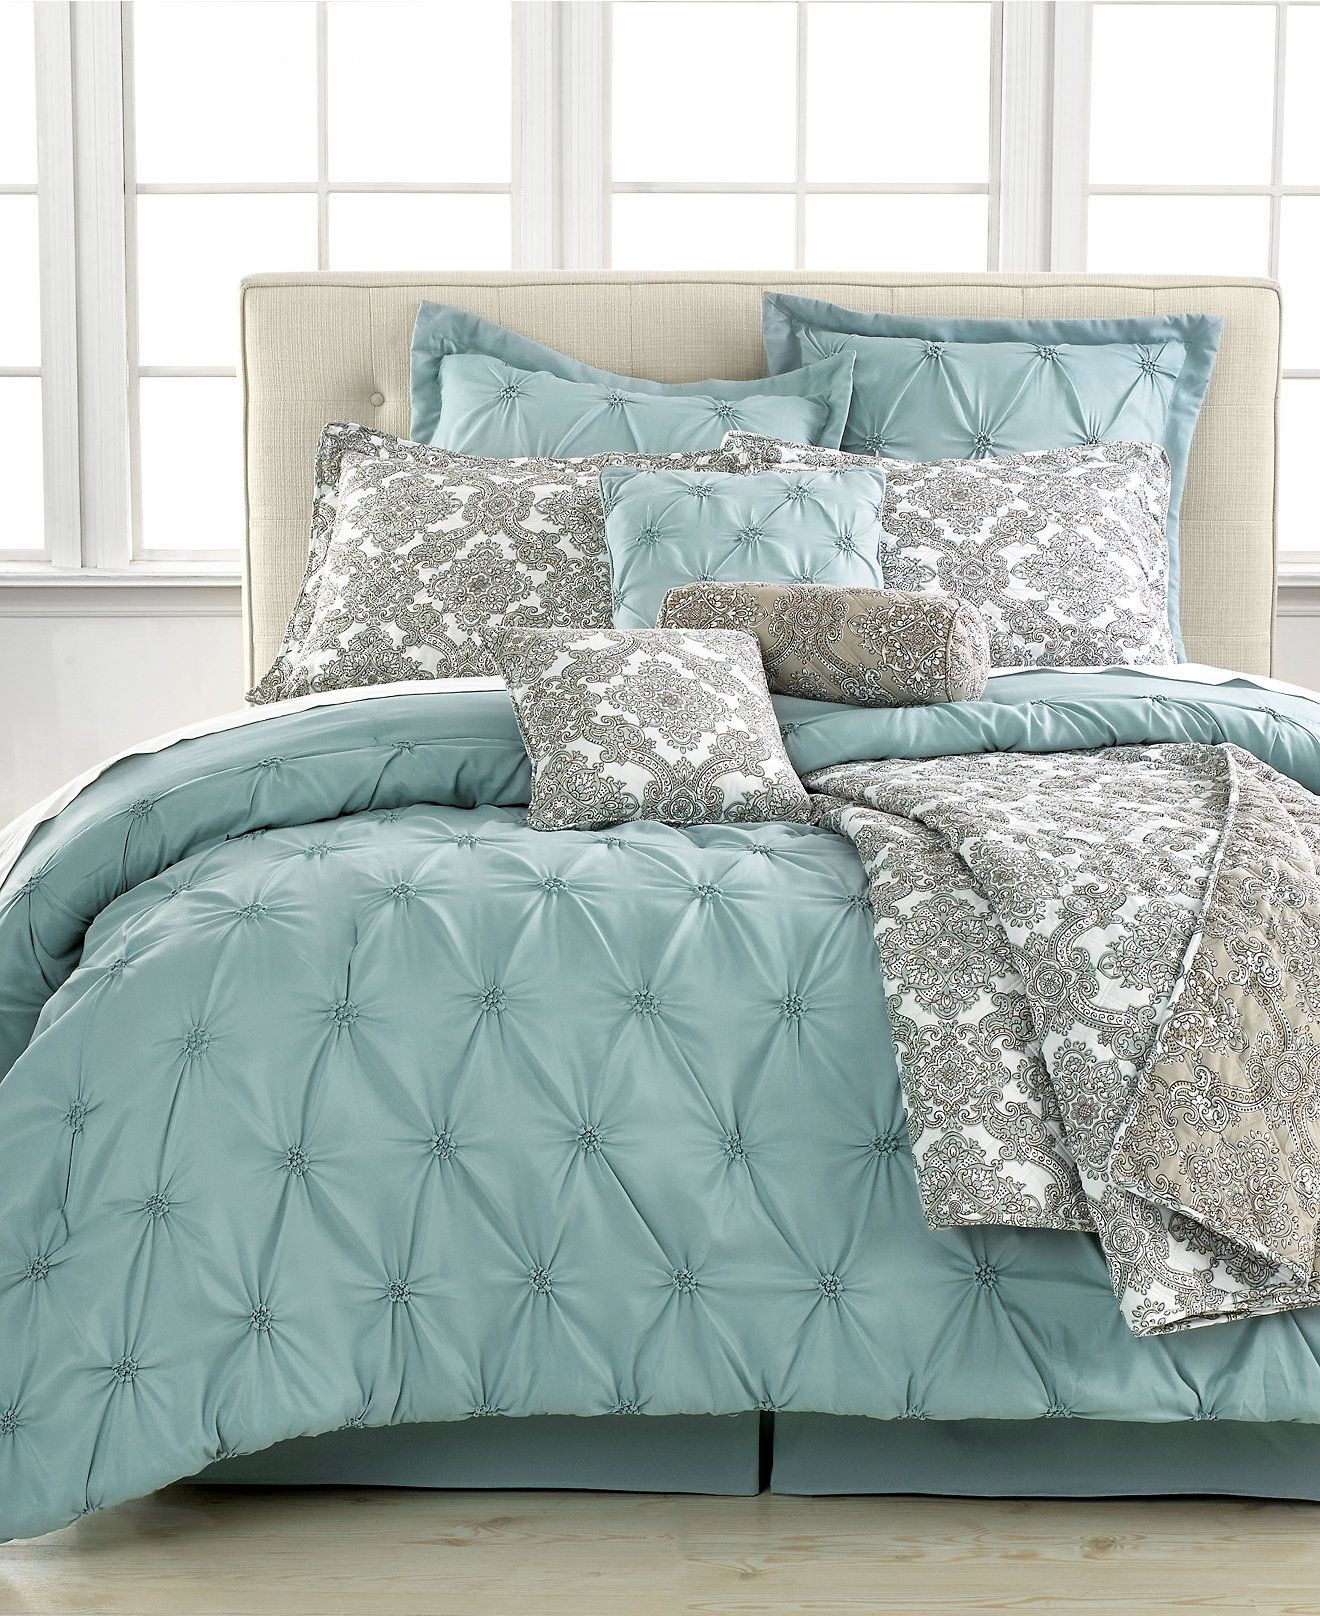 jasmine blue 10 piece california king comforter set bed in a bag bed bath macy 39 s. Black Bedroom Furniture Sets. Home Design Ideas